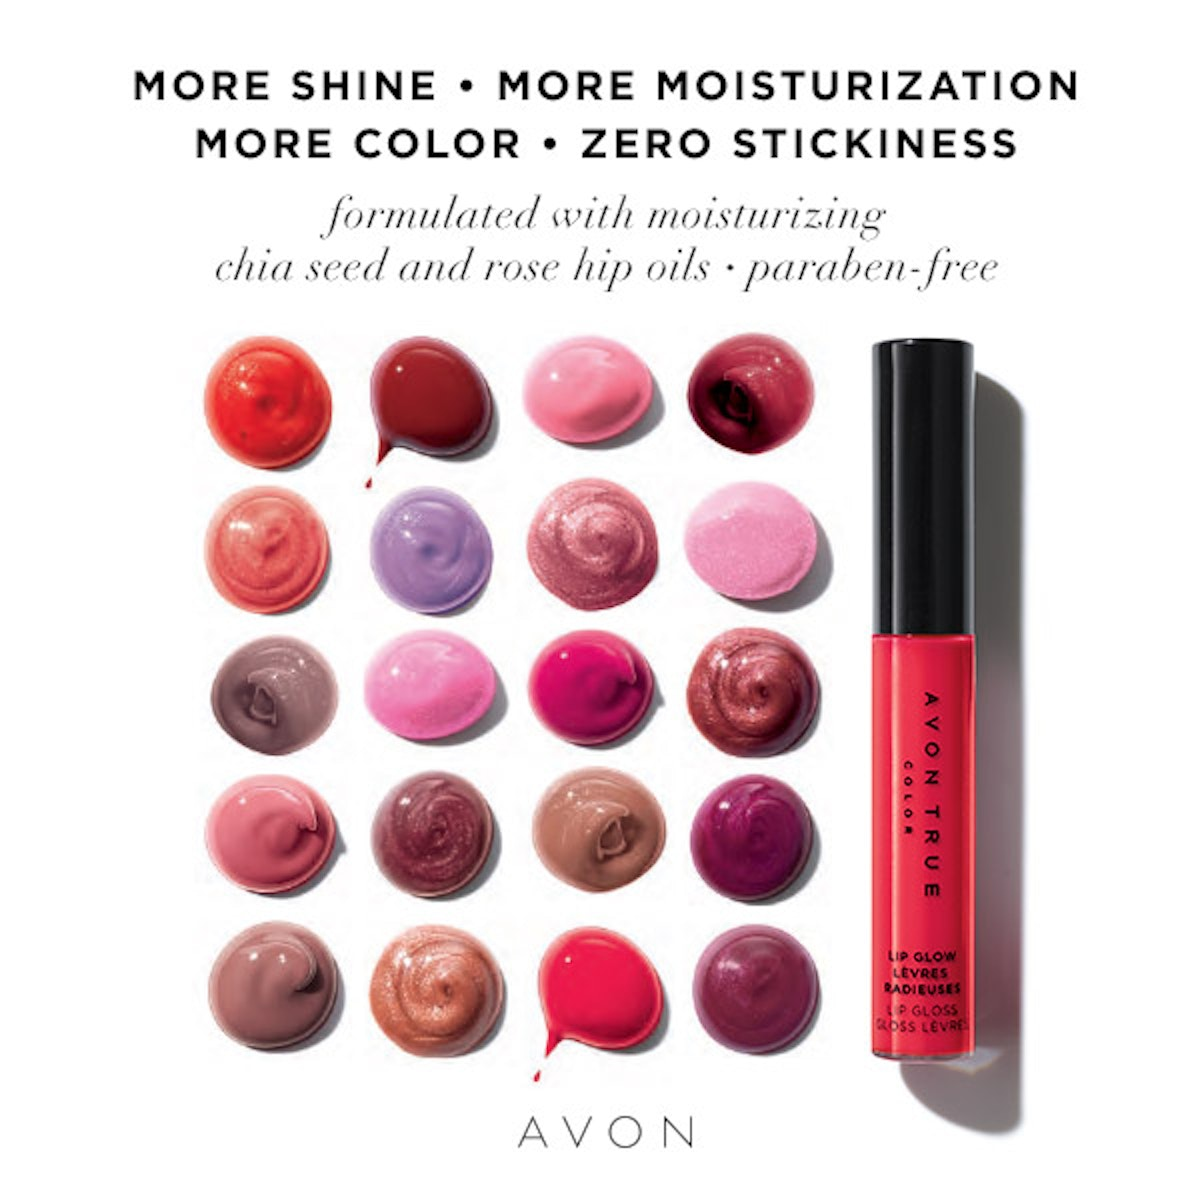 Avon True Color Make Up Guide Fallwinter 20182019 Journey Of An